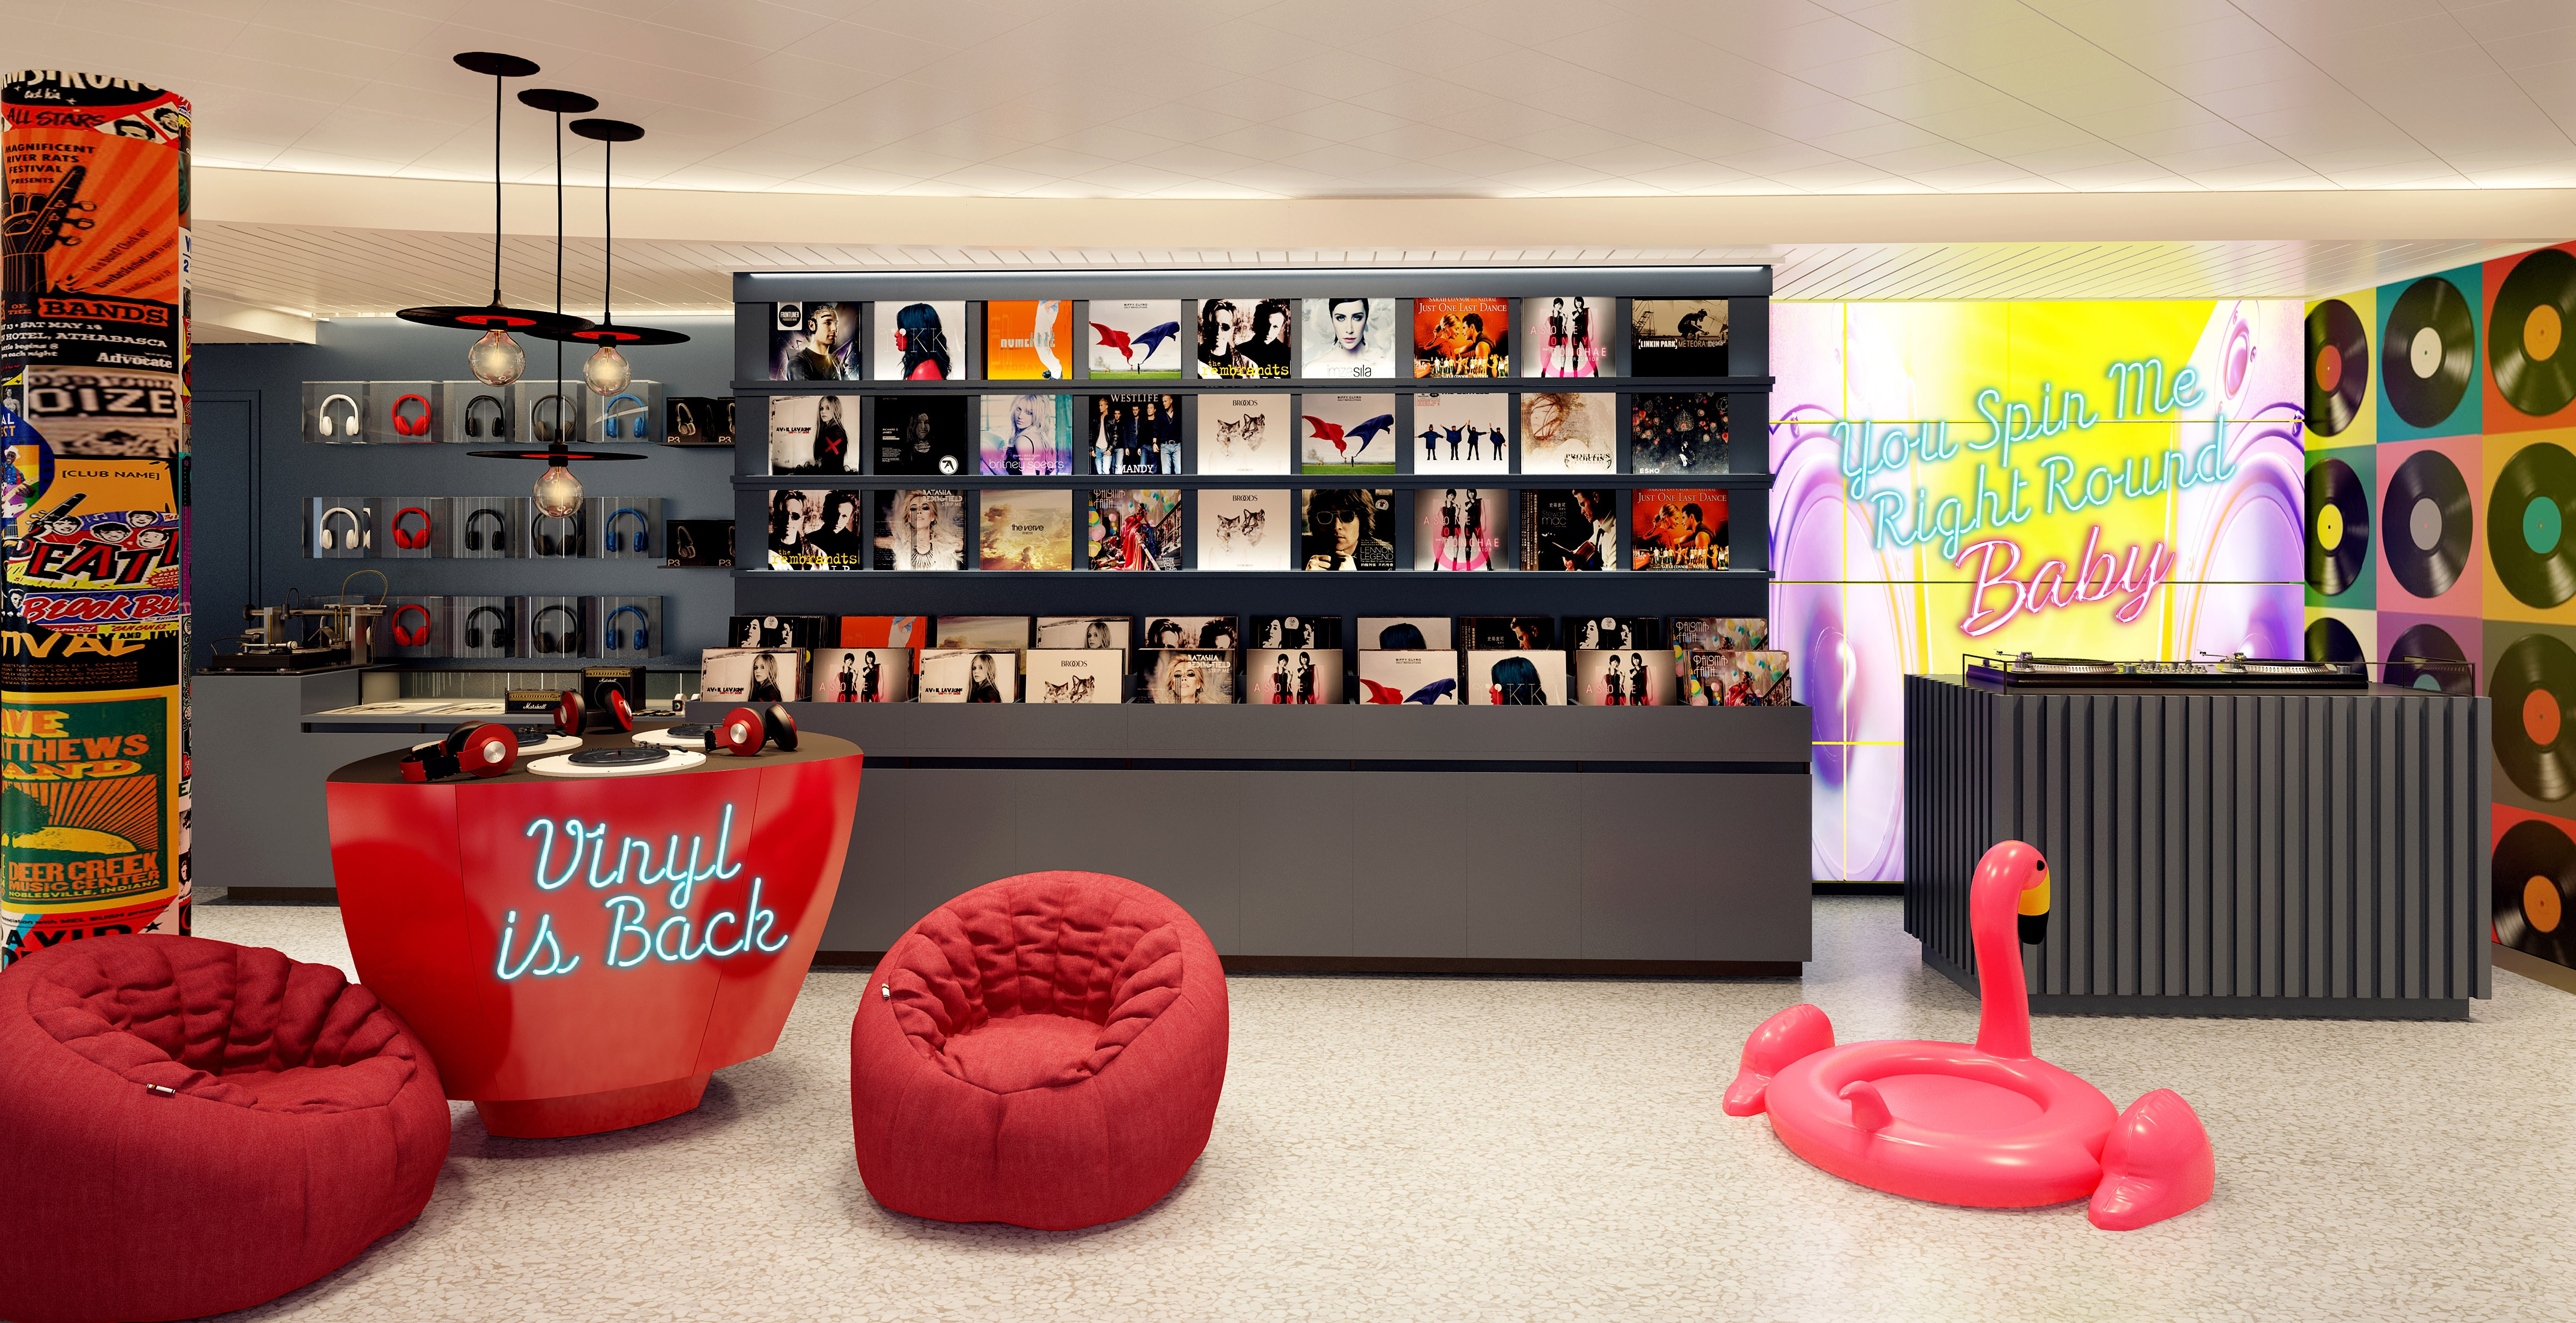 Virgin Voyages Music Centric Offerings On Scarlet Lady